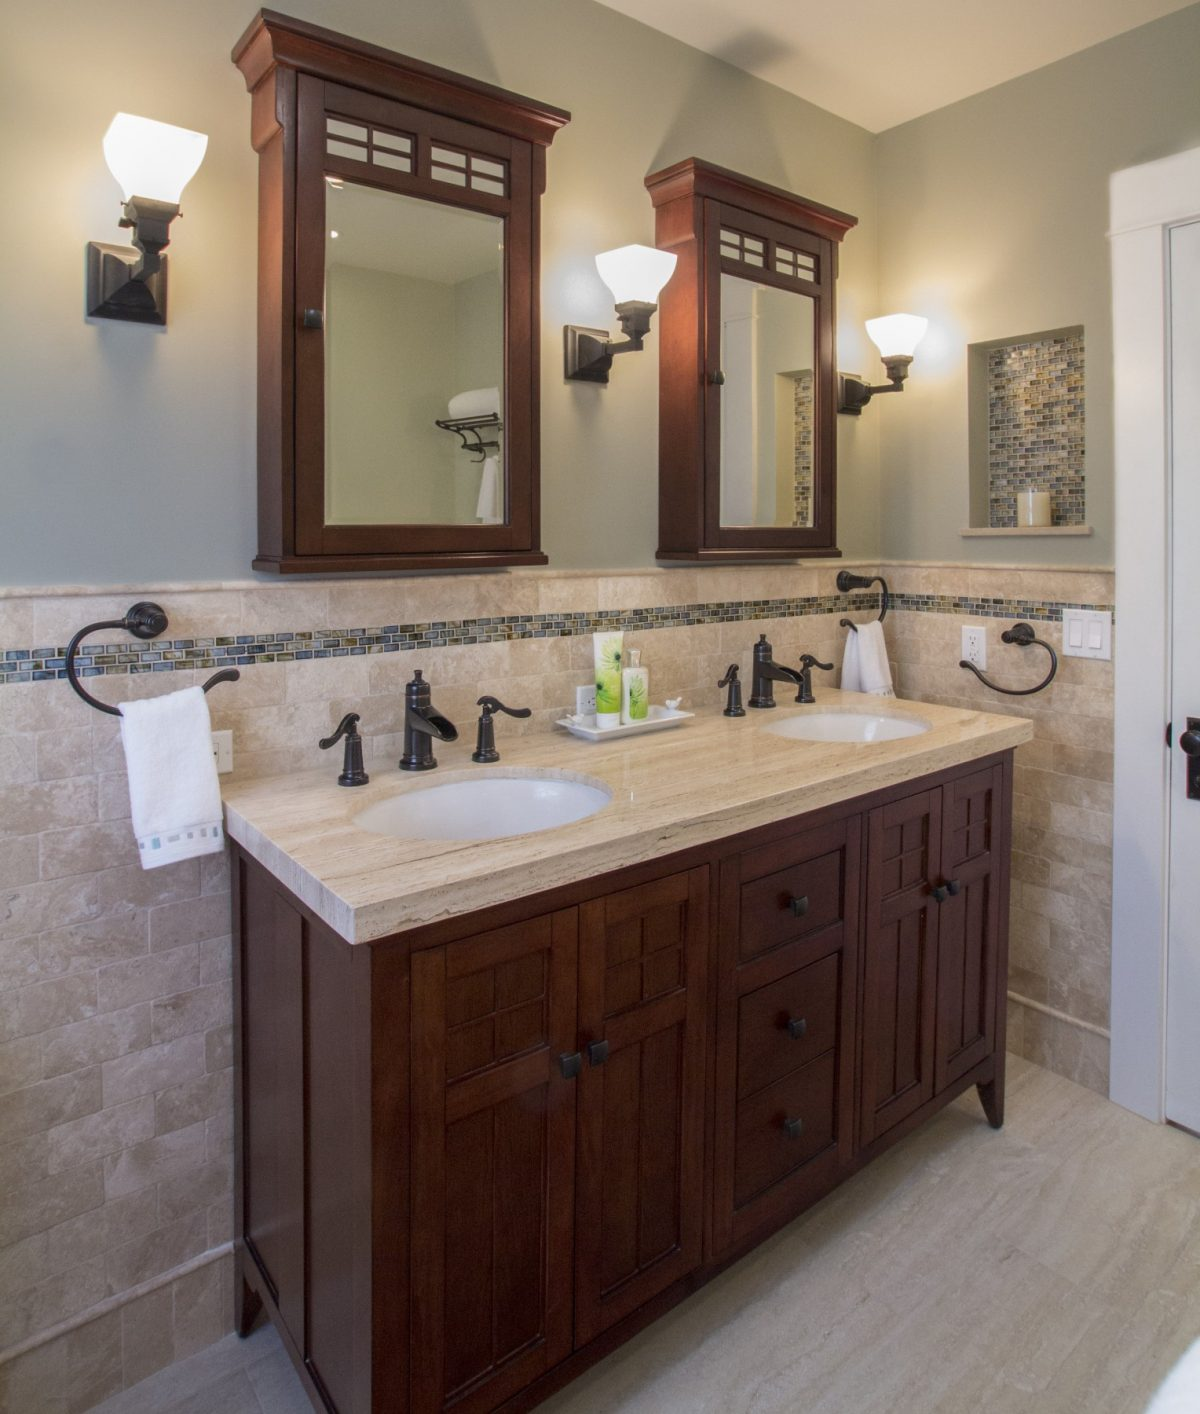 Master Bath with Craftsman details and modern tile accents